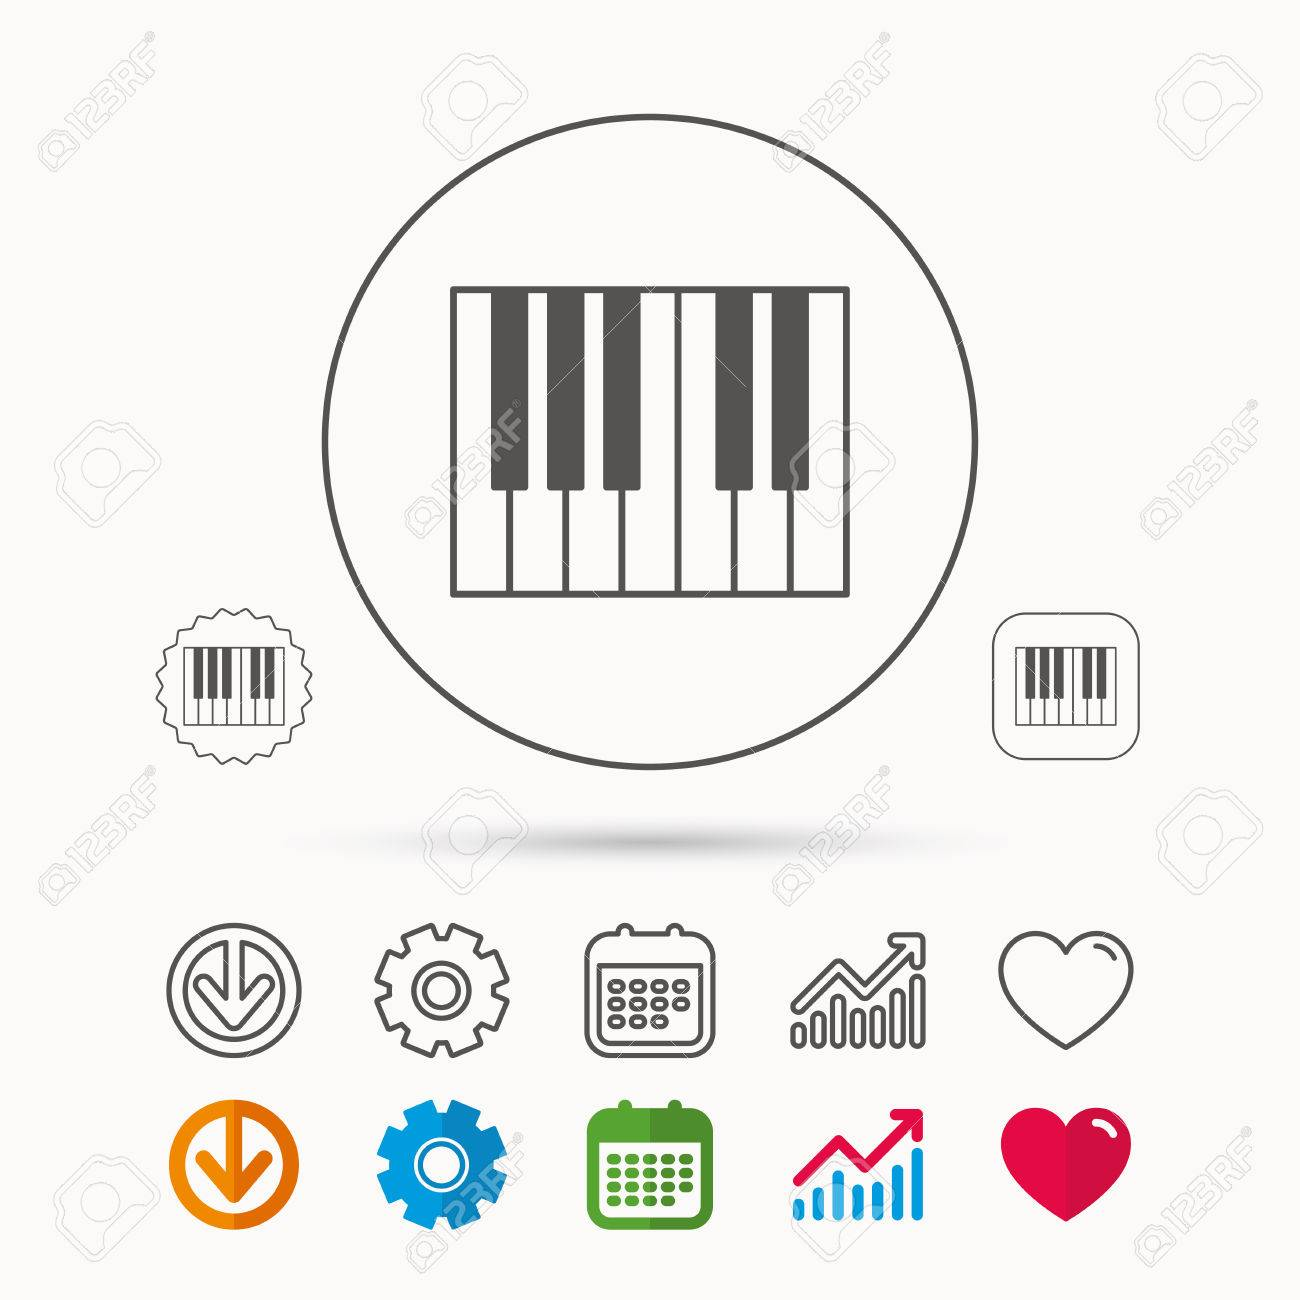 Piano icon  Royal musical instrument sign  Calendar, Graph chart